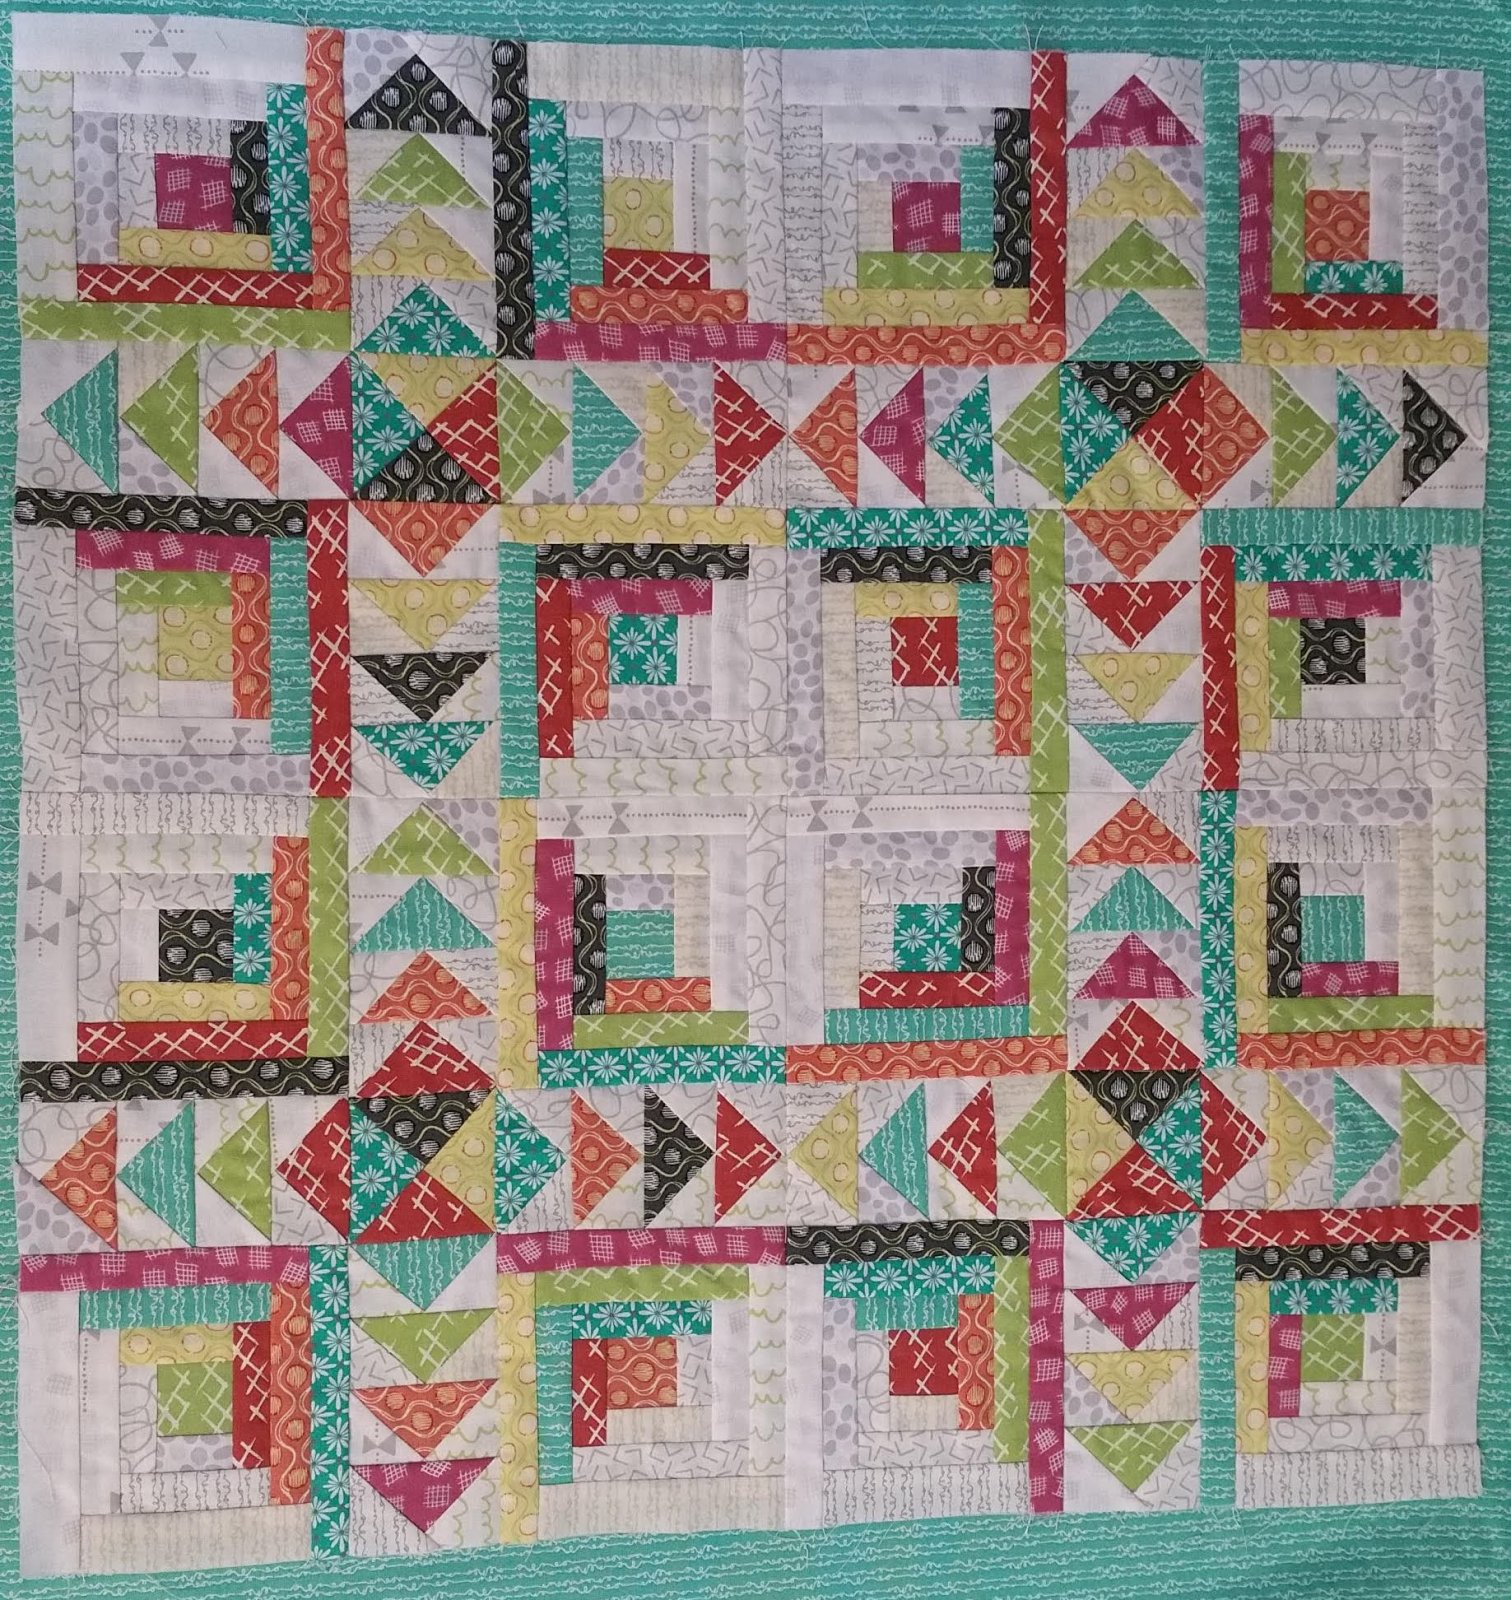 fun view large skein and kit kits bundle htm products cabin shop quilt image online book